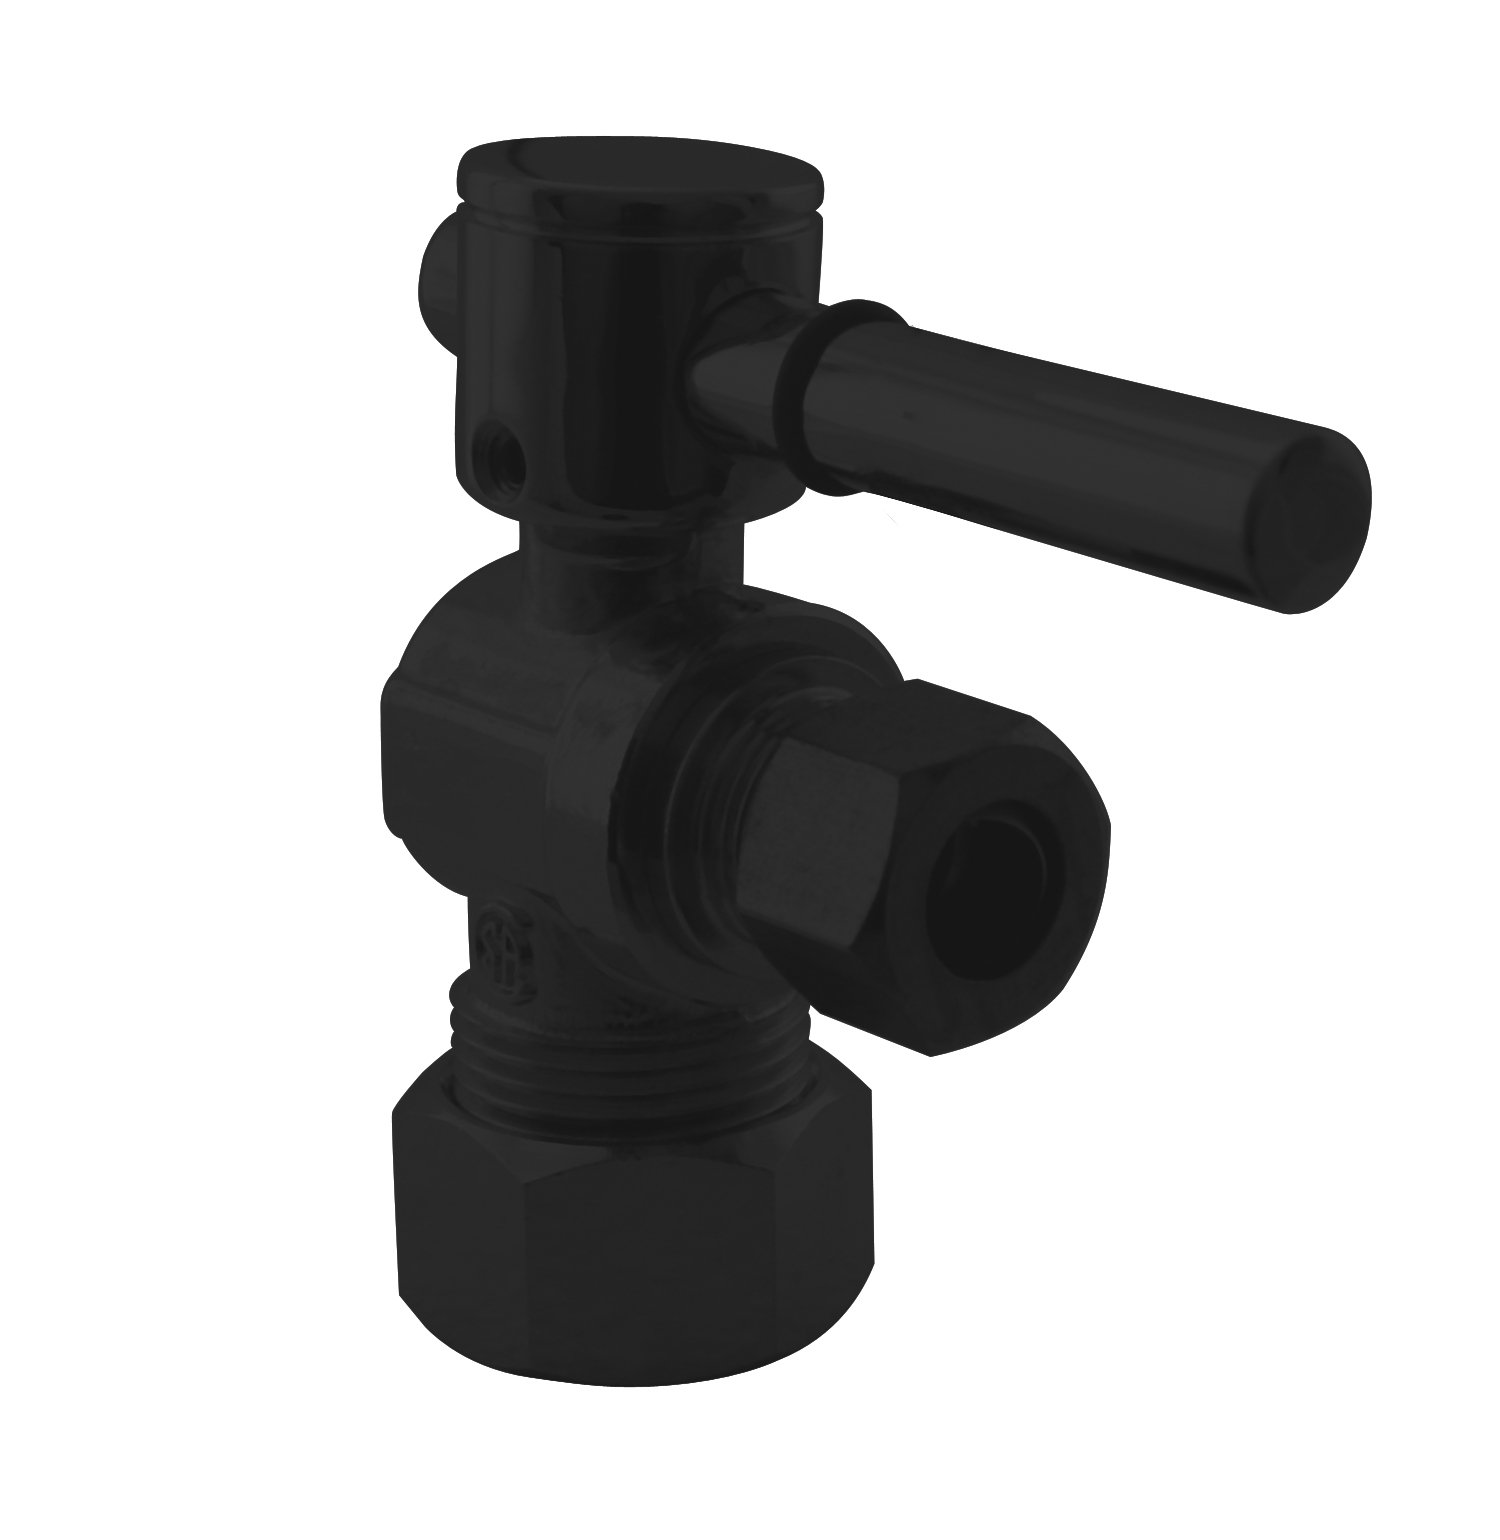 Westbrass R105BL-62 5/8-Inch OD x 3/8-Inch OD Angle Stop with 1/4-Turn Lever Handle, Matte Black